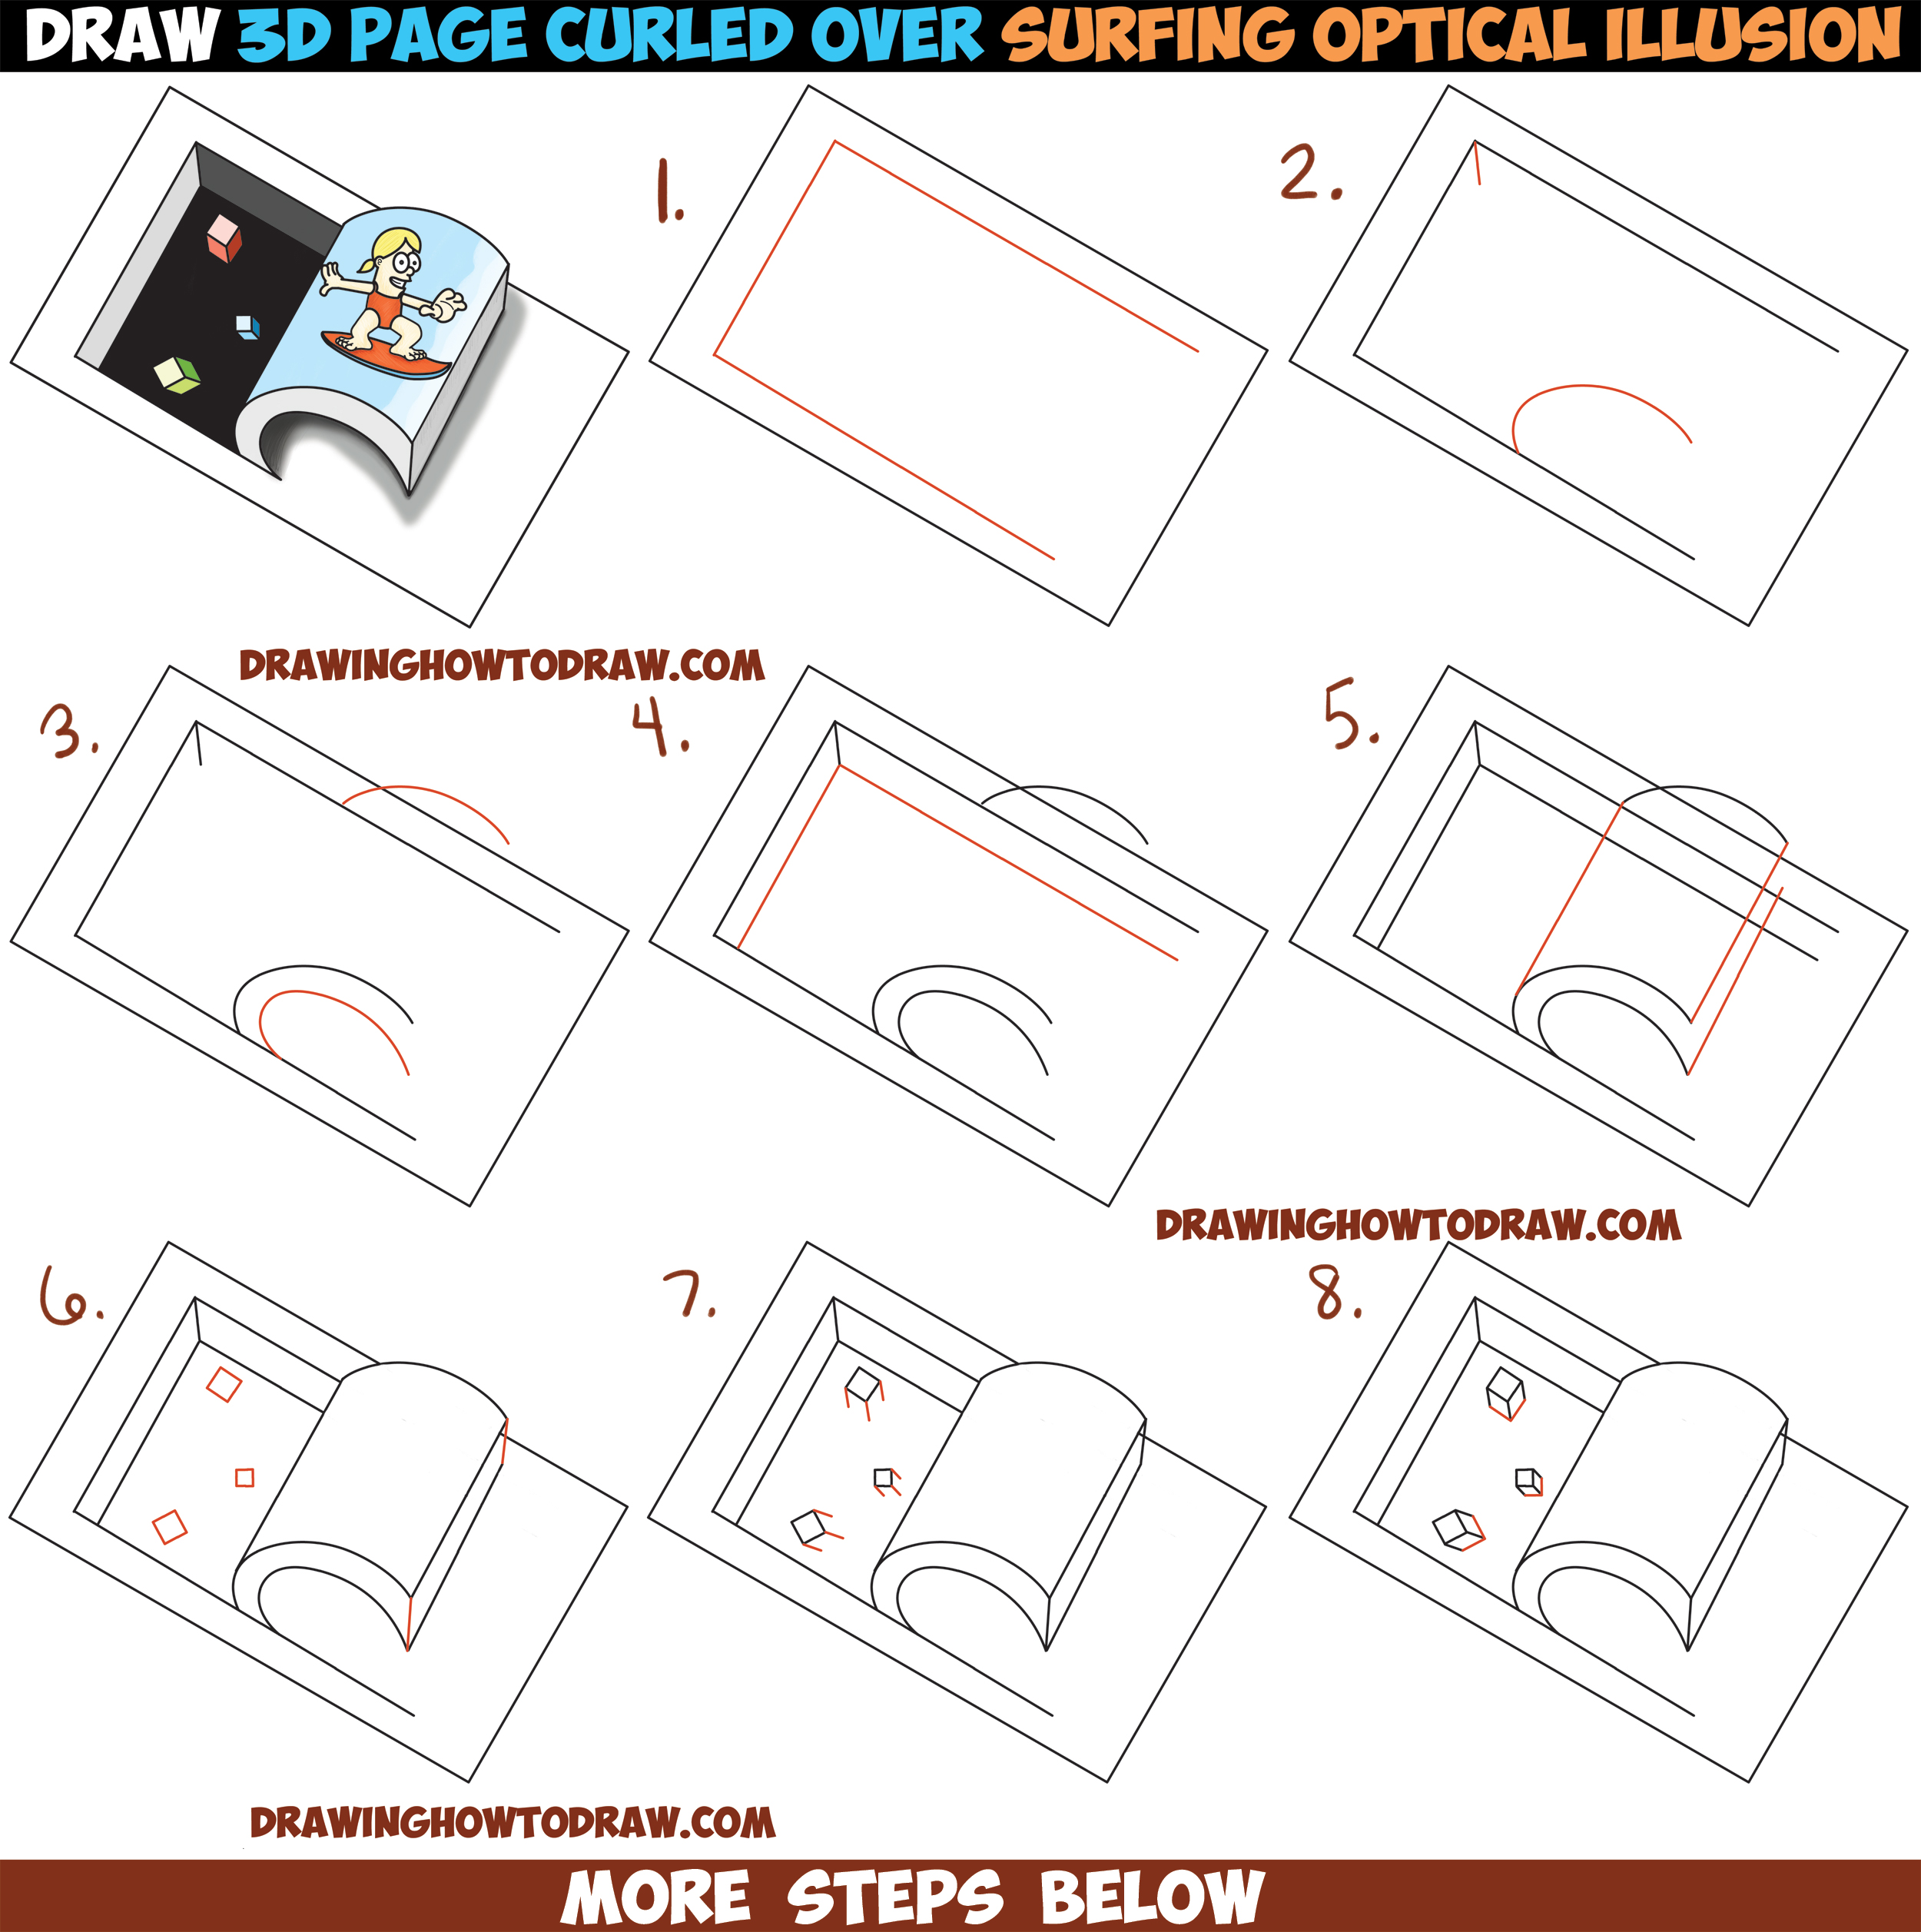 How to Draw Paper Being Curled Up Like a Wave with Cartoon Girl Surfing : Cool Optical Illusion Easy Step by Step Drawing Tutorial for Kids